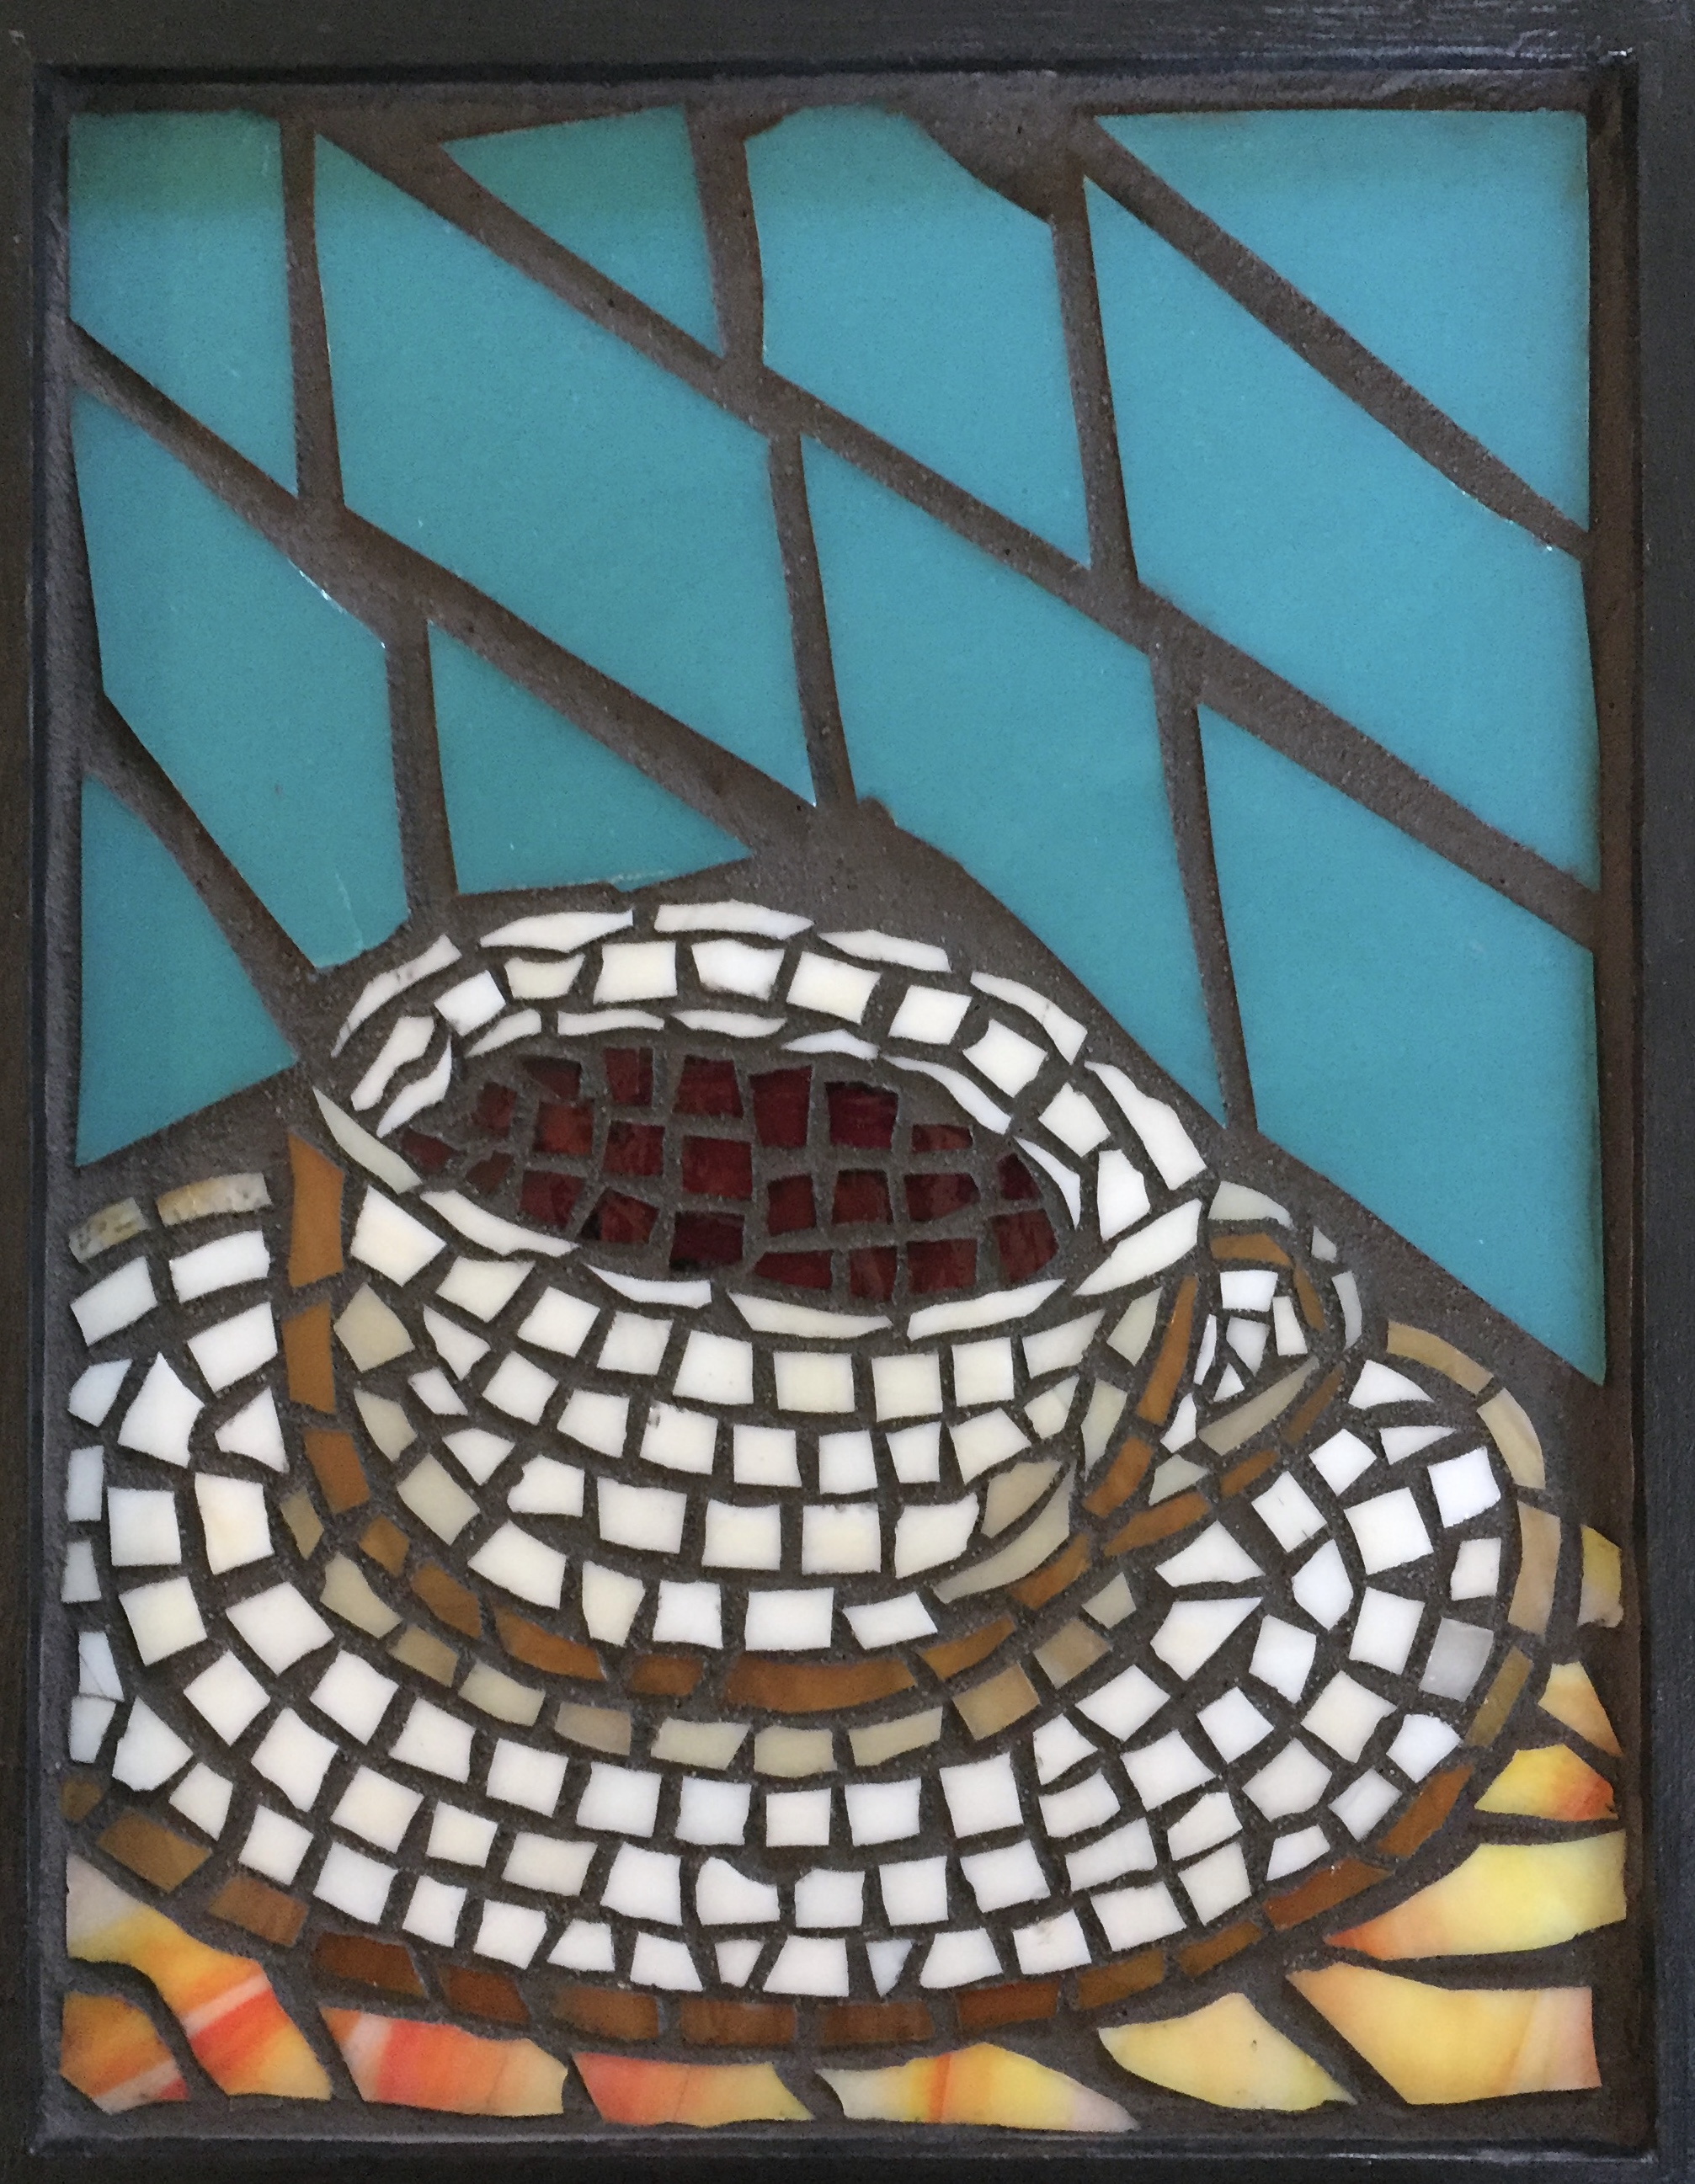 Full cup of coffee mosaic